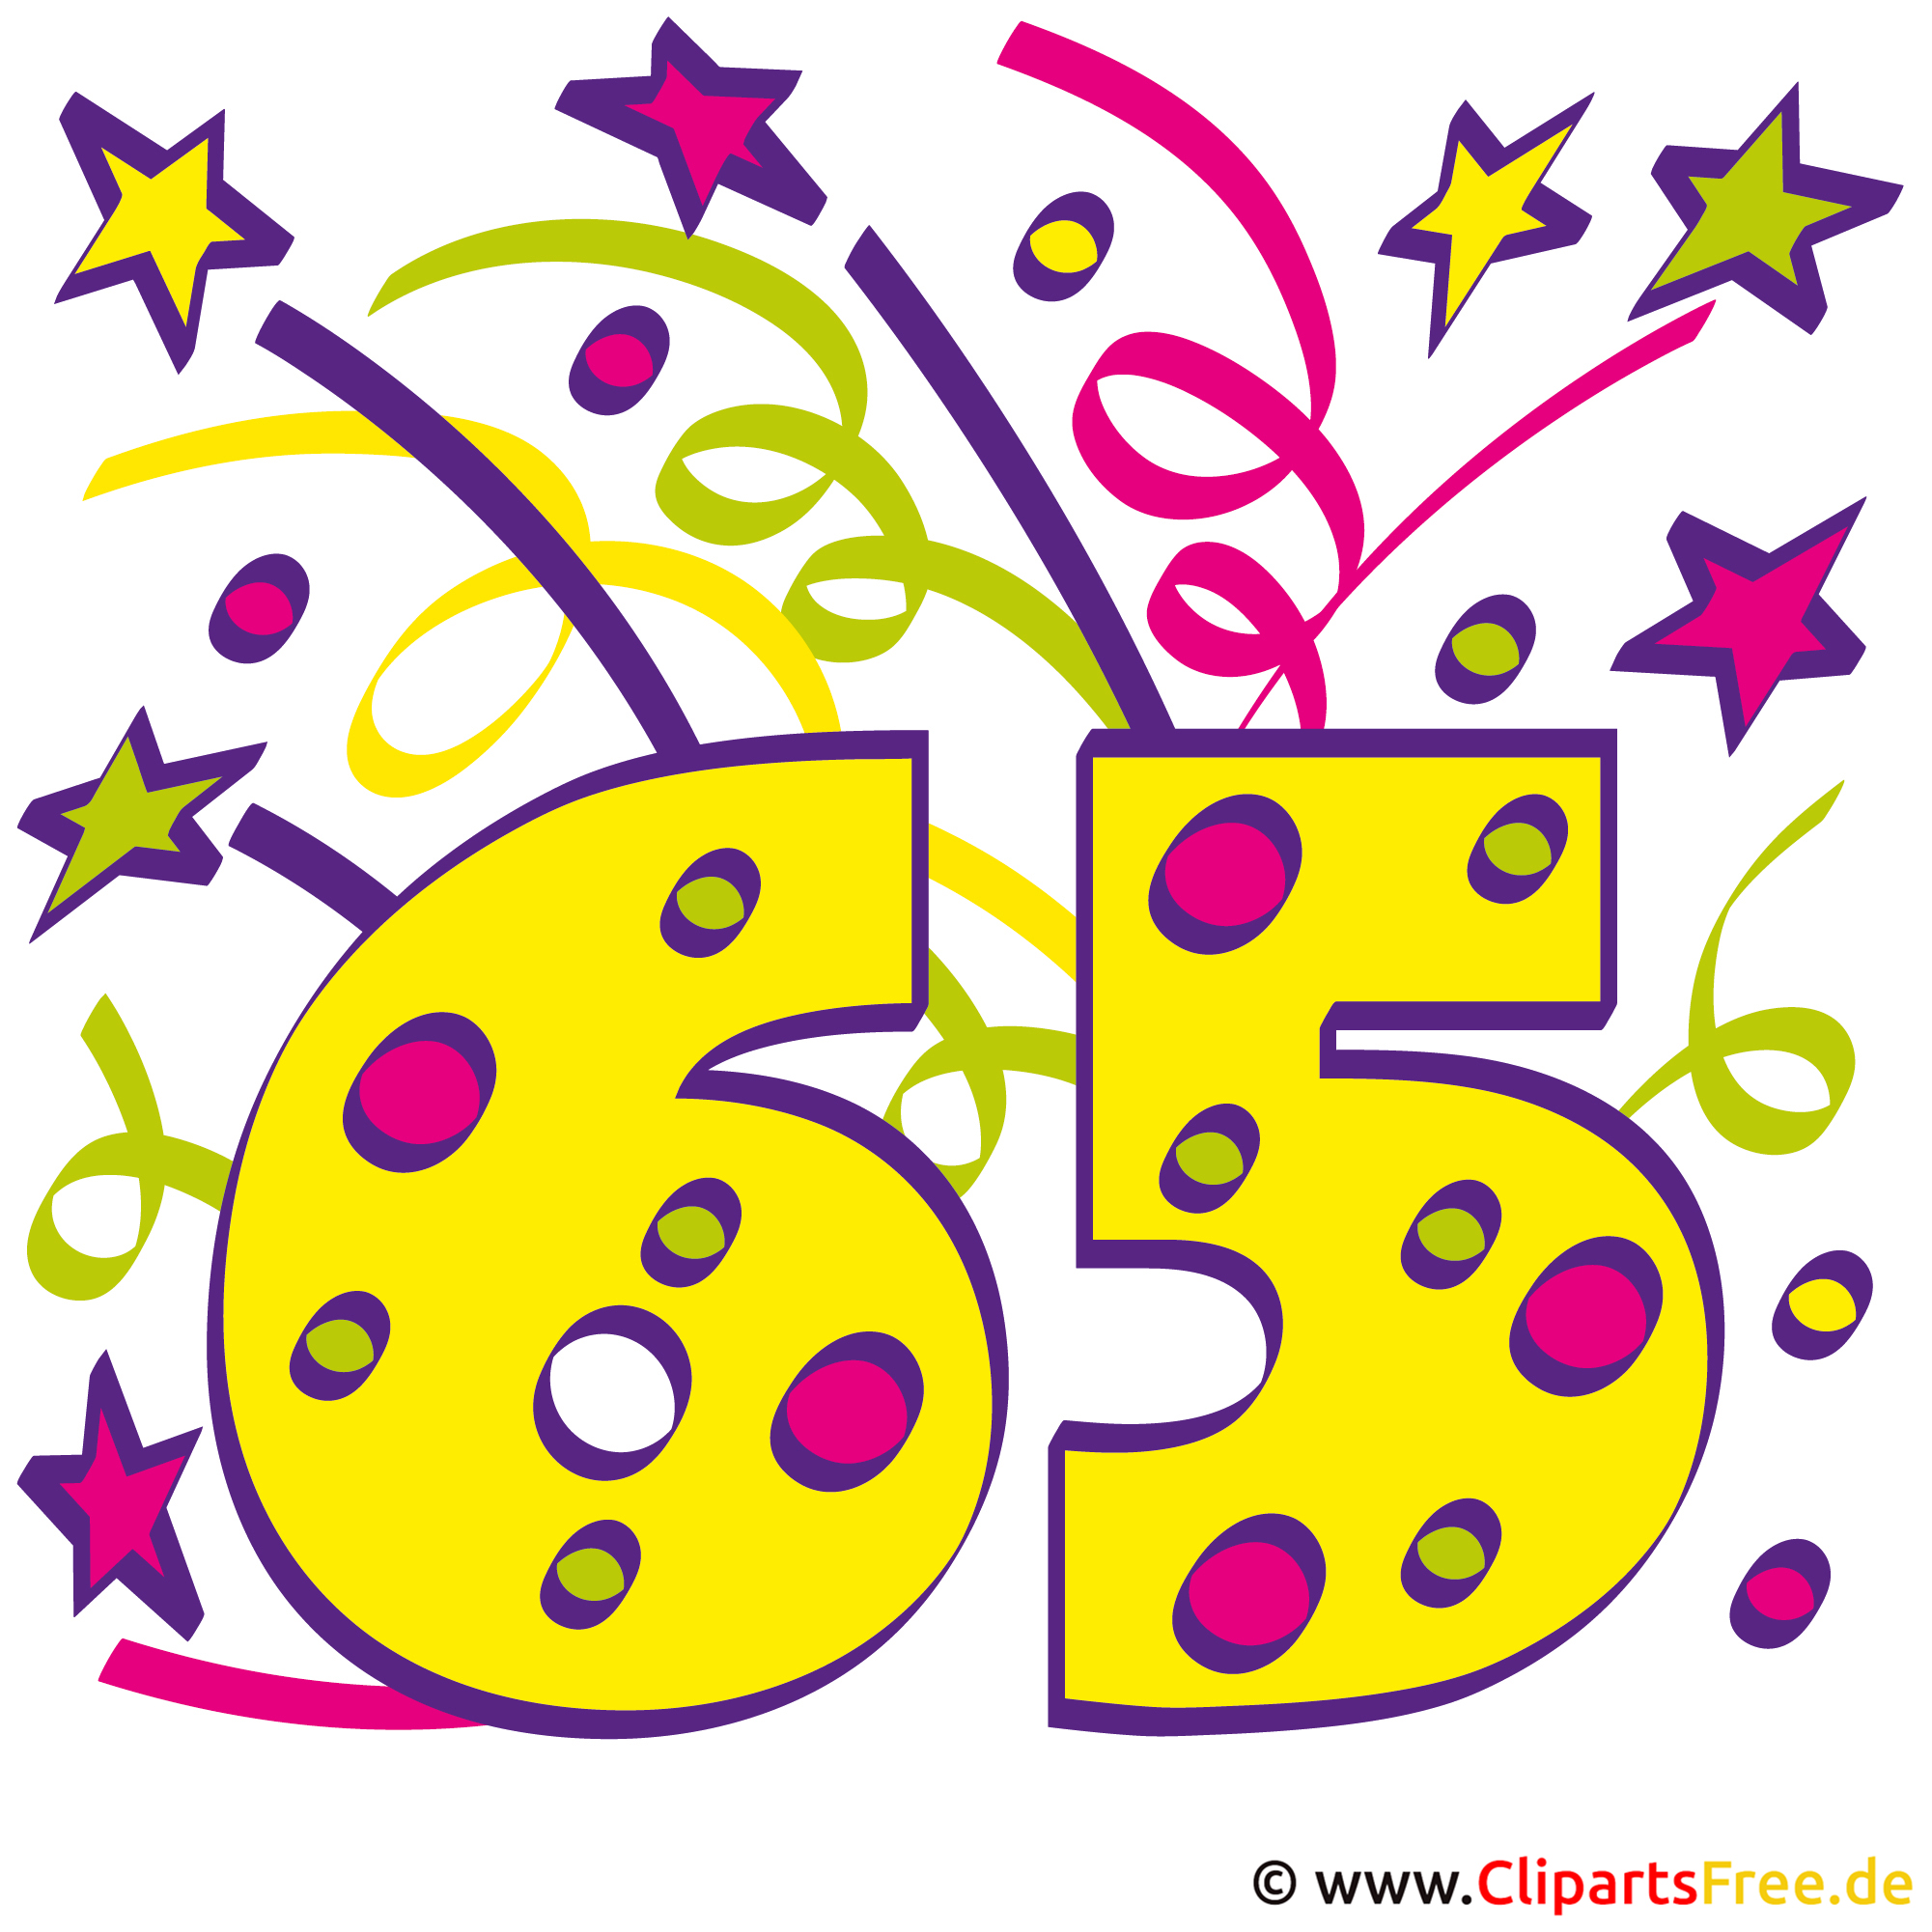 clipart geburtstag - photo #9